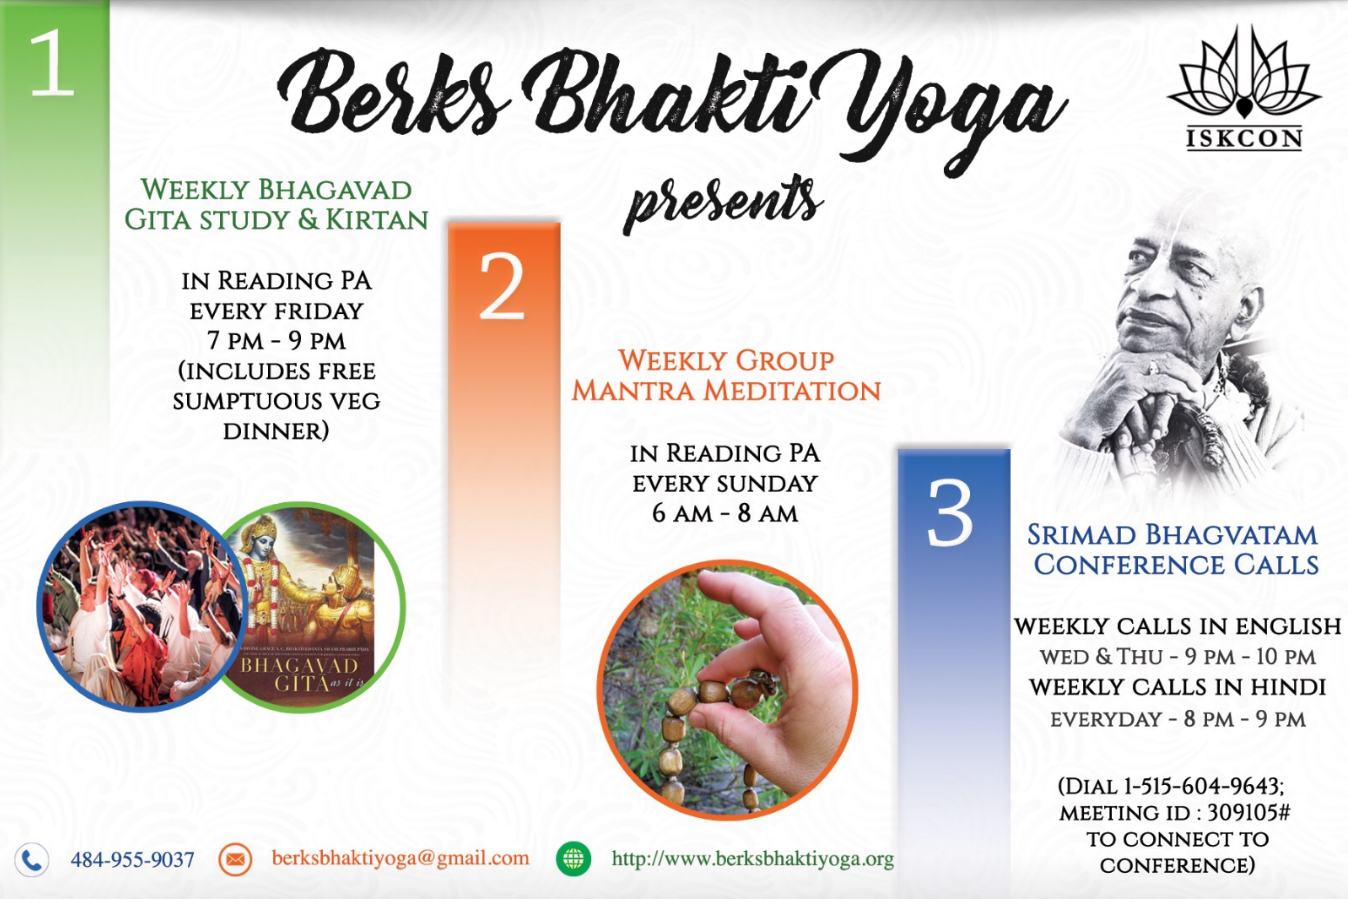 Come and Experience the Bliss and Nectar of Bhakti Yoga - Kirtan, Bhagvat Gita Study, Mantra Meditation in Reading - Friday's @7pm